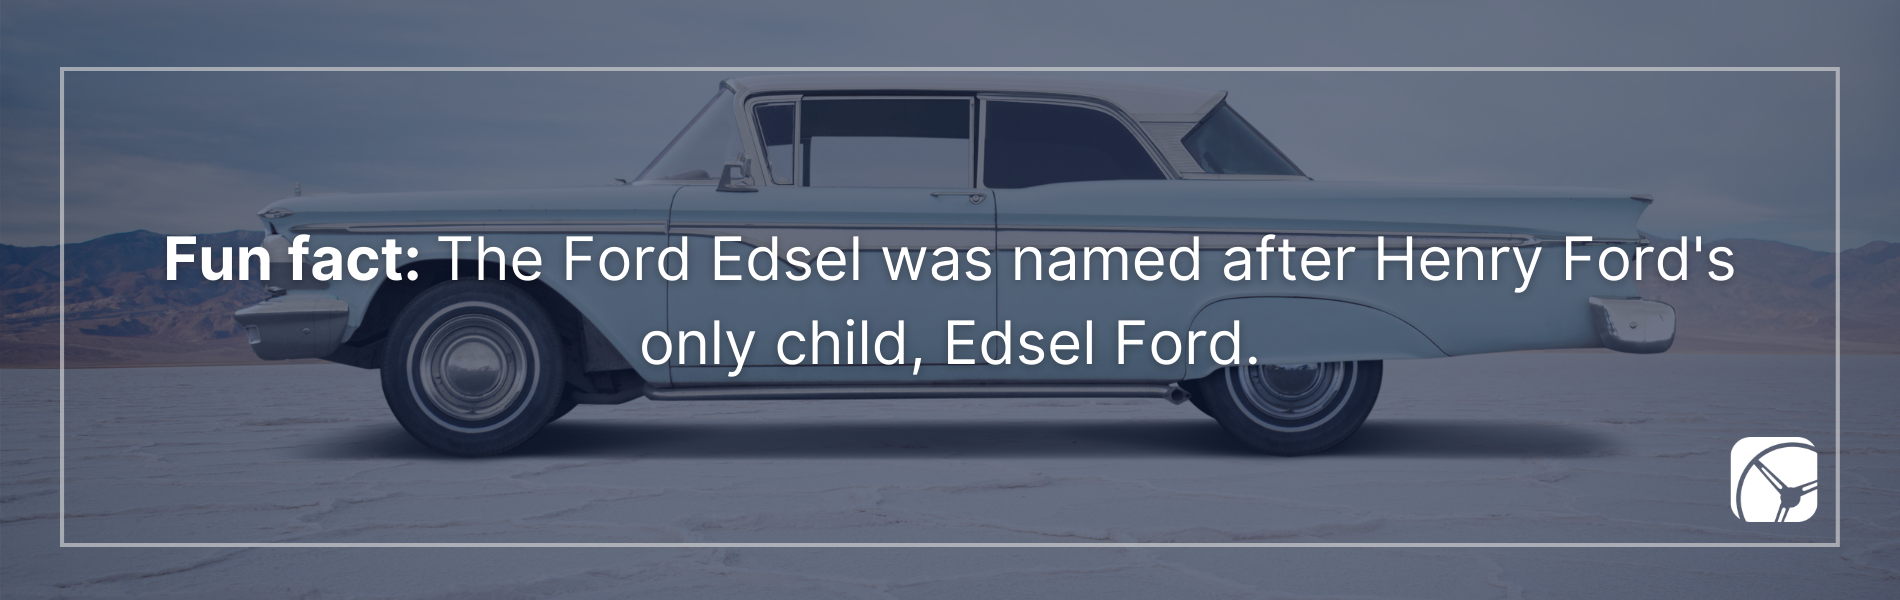 Fun fact: The Ford Edsel was named after Henry Ford's only child, Edsel Ford.